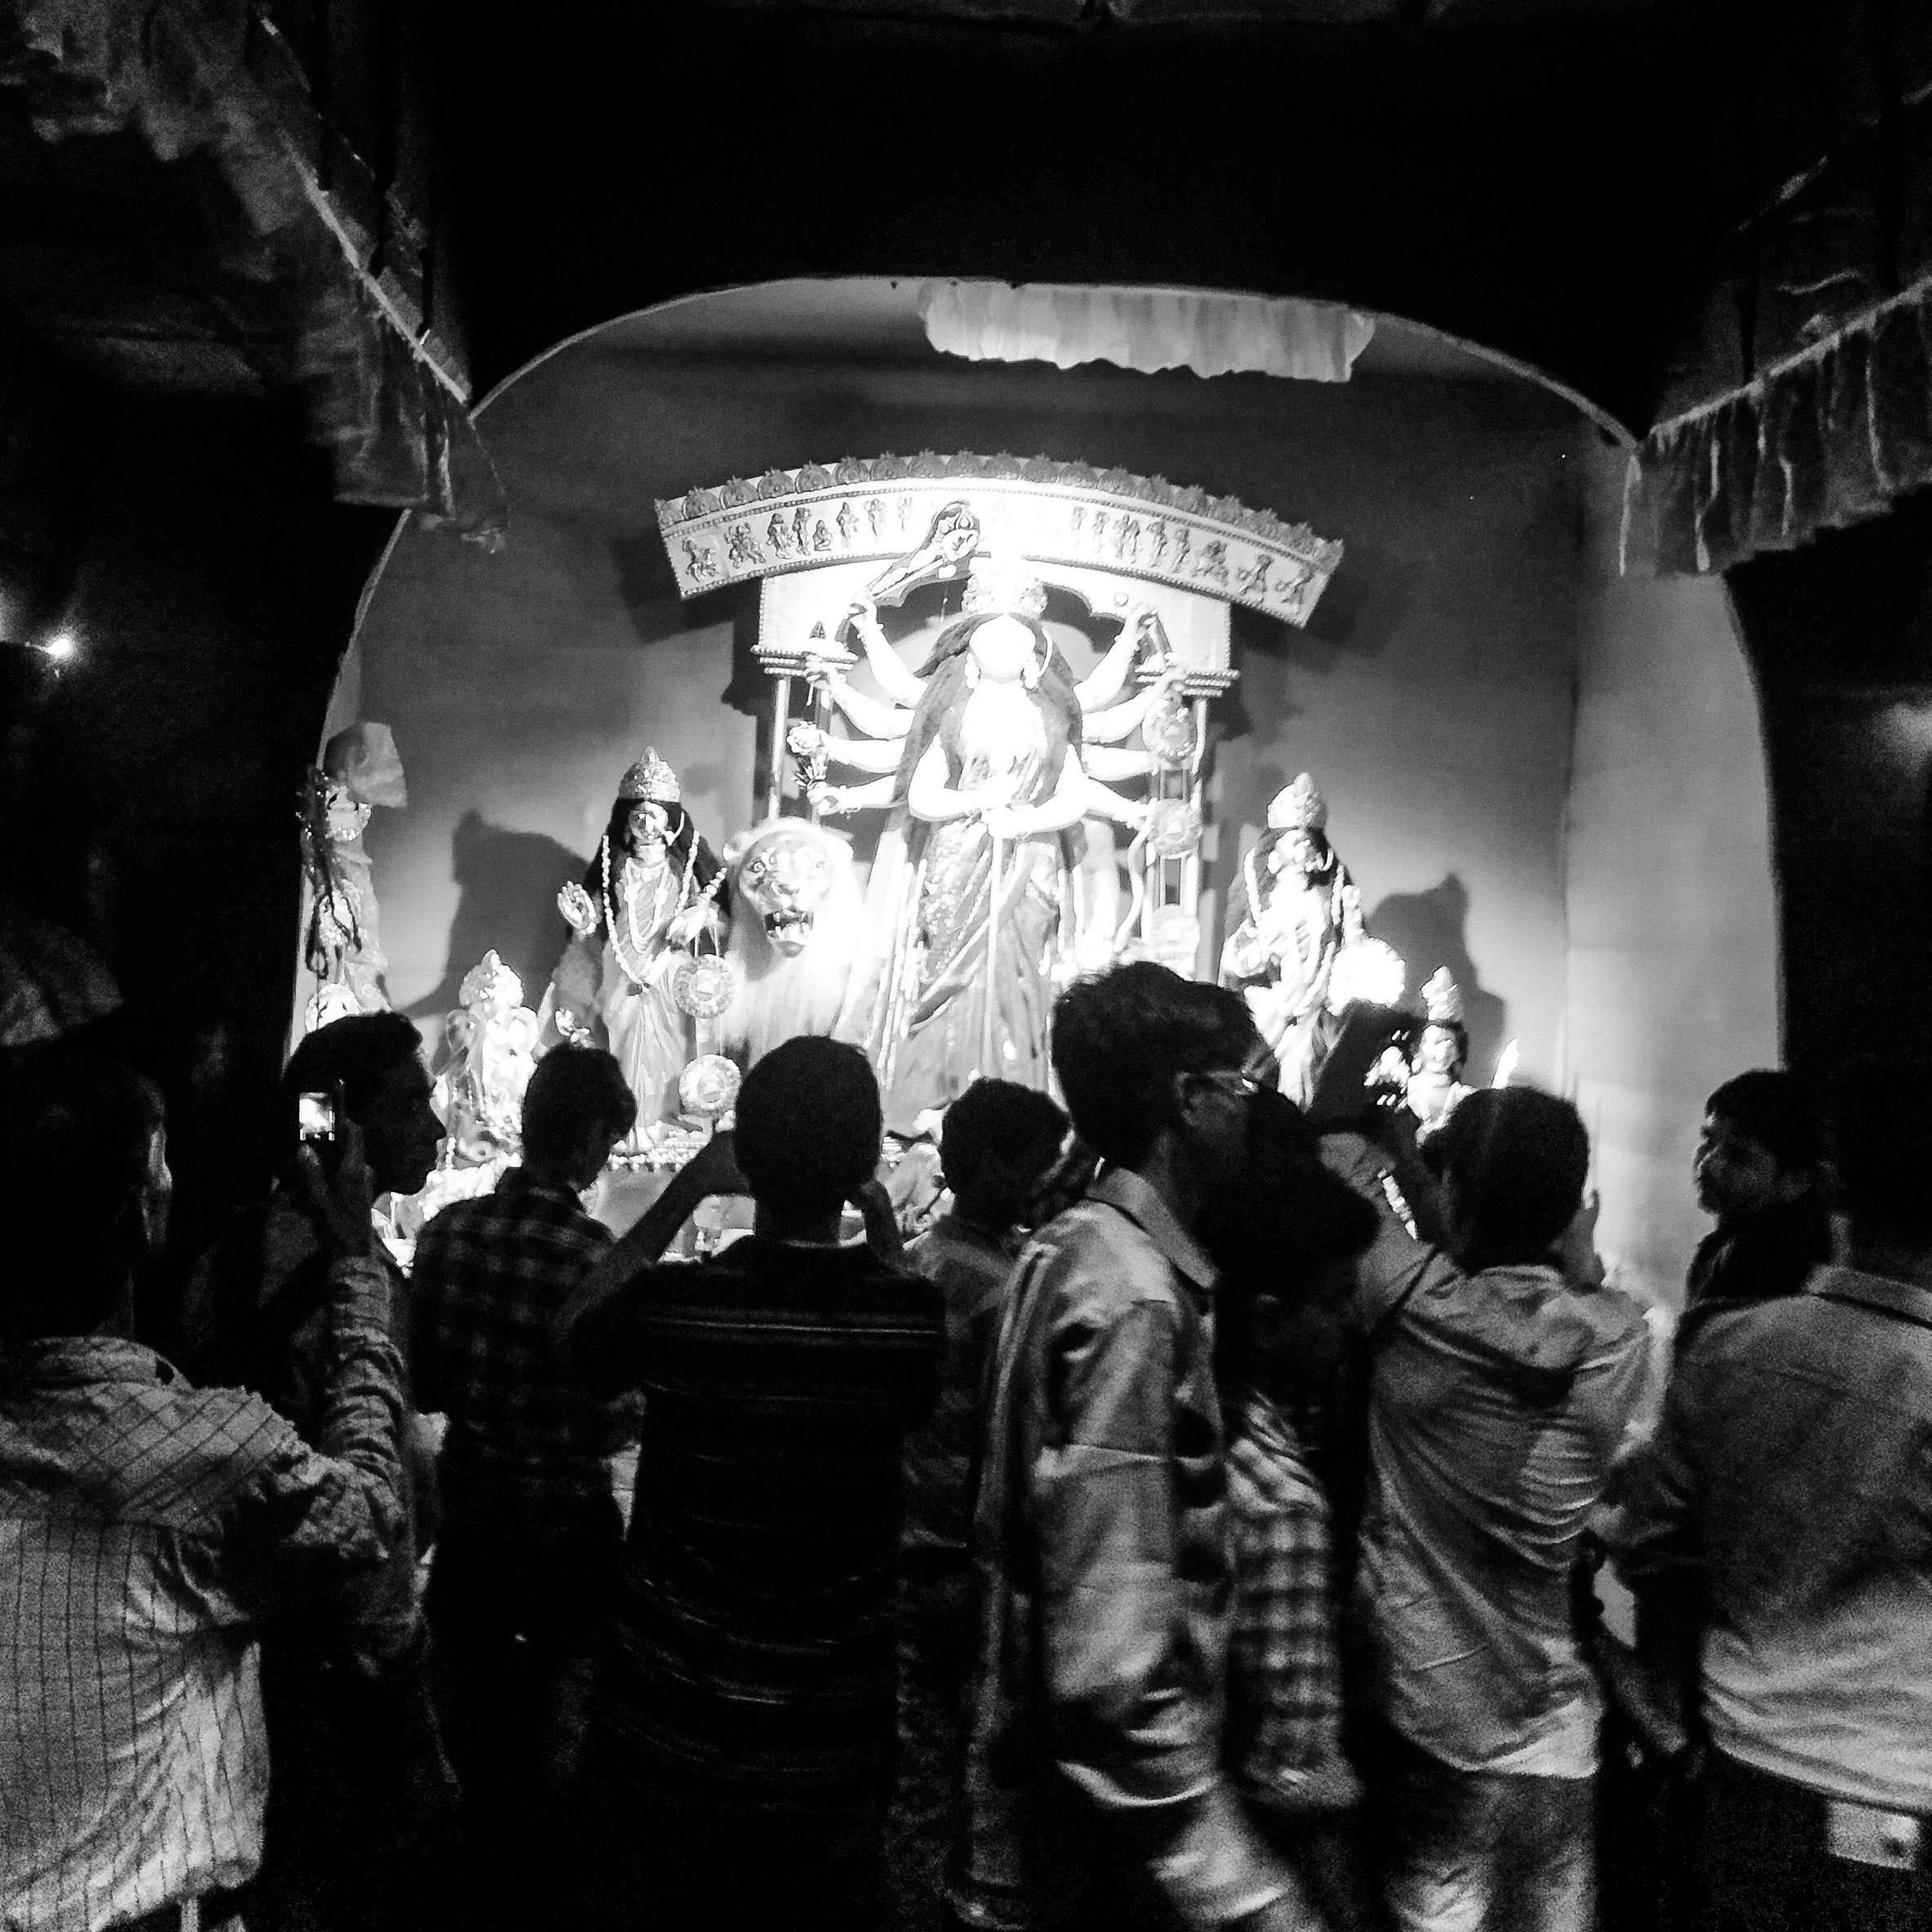 Walking through the narrow lanes, we stop at a 'regular' small community puja, thronged by late night puja crowds, a staple of the city in this festival week every year. The Hijras' puja was a contrast, there were no other visitors besides us but the impersonality of this faceless crowd at a nameless puja was countered there by the visible presence of a large group of Hijras sitting around, chatting and laughing.